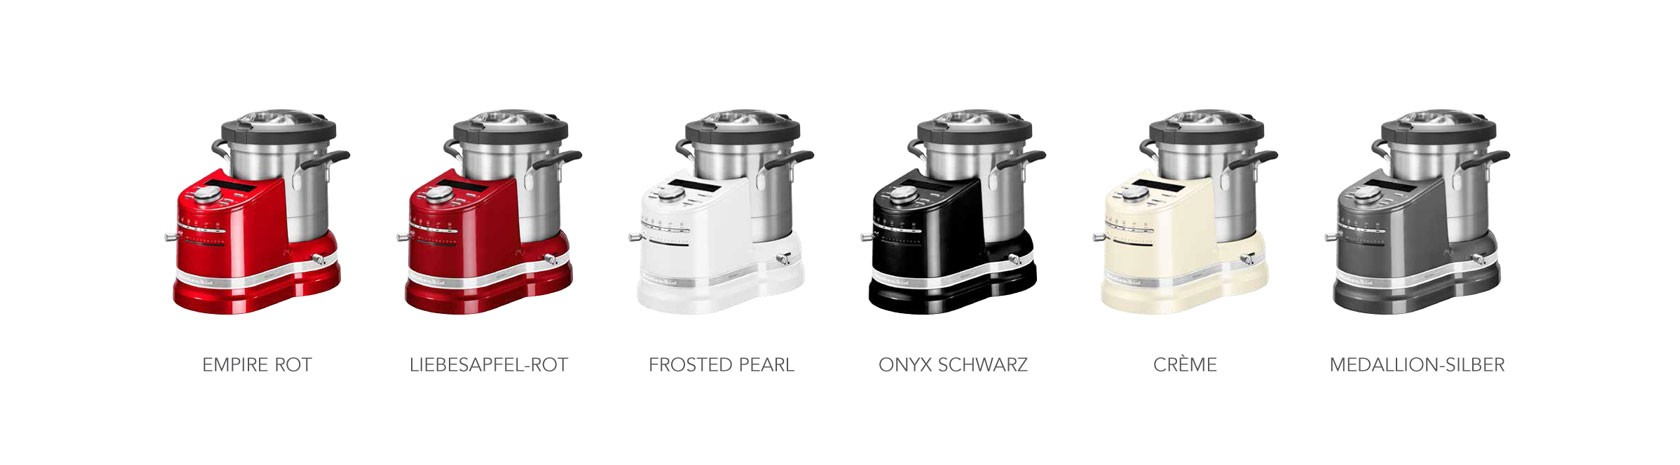 kr ftemessen thermomix vs kitchenaid vs cooking chef km086 vs prep cook hp 5031. Black Bedroom Furniture Sets. Home Design Ideas